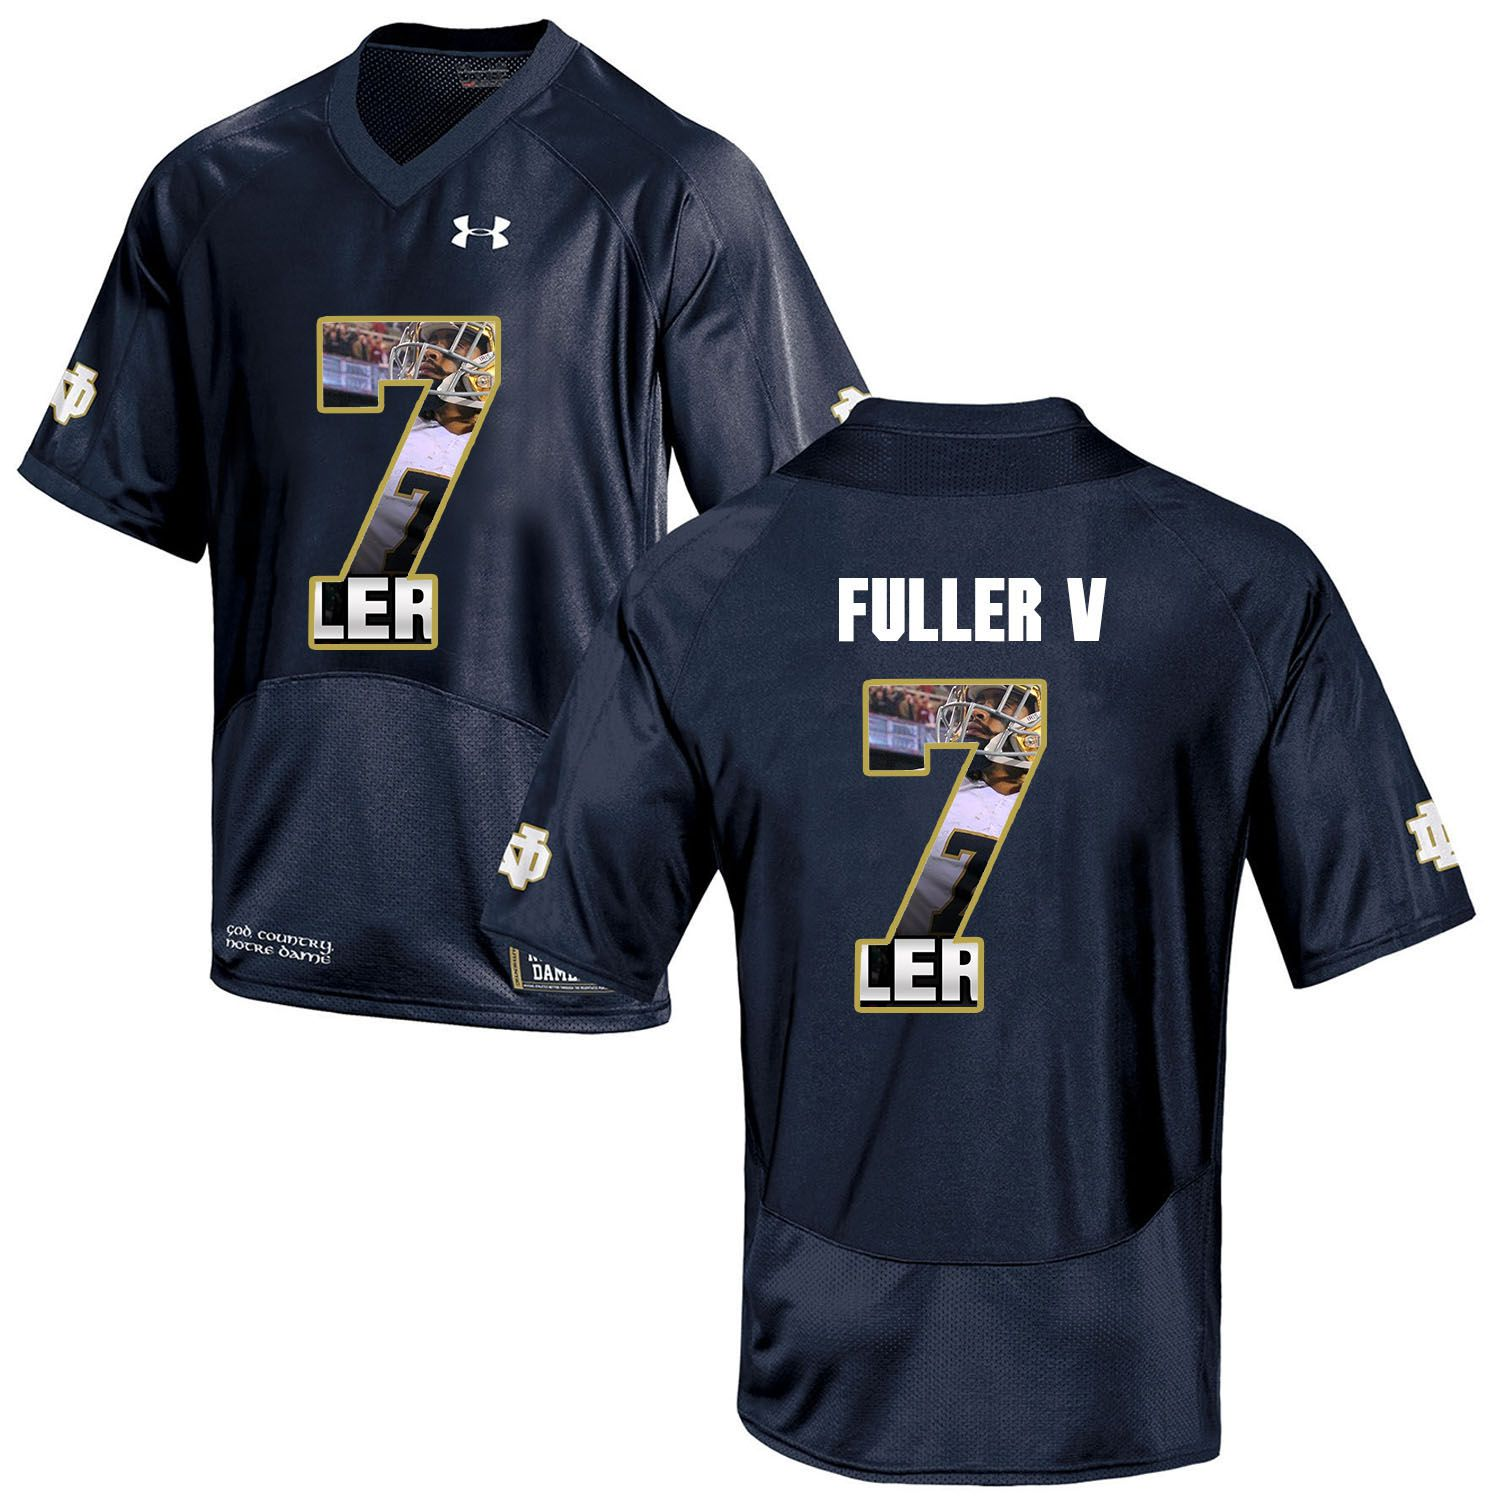 Men Norte Dame Fighting Irish 7 Fuller v Navy Blue Fashion Edition Customized NCAA Jerseys